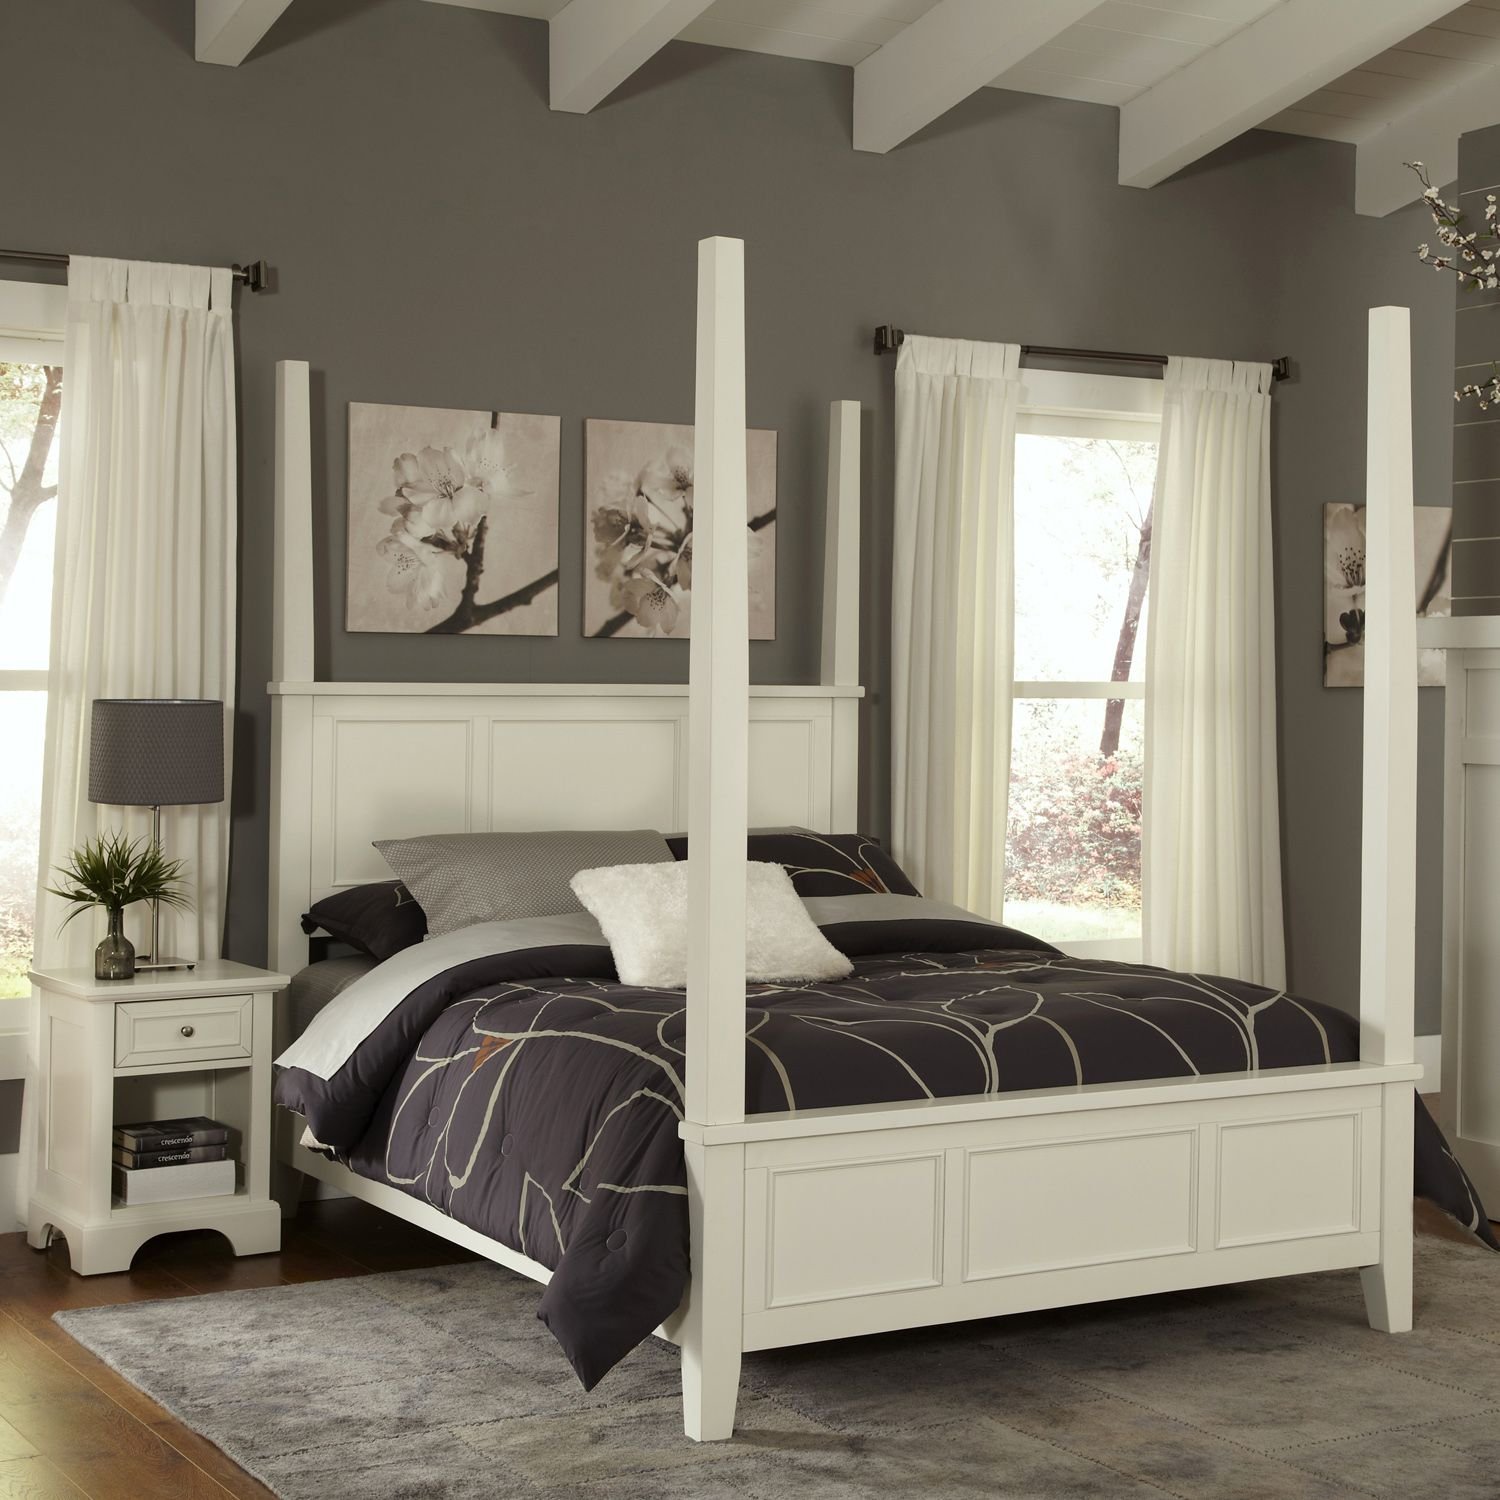 Superb Home Styles Naples pc Queen Headboard Footboard Frame Poster Bed and